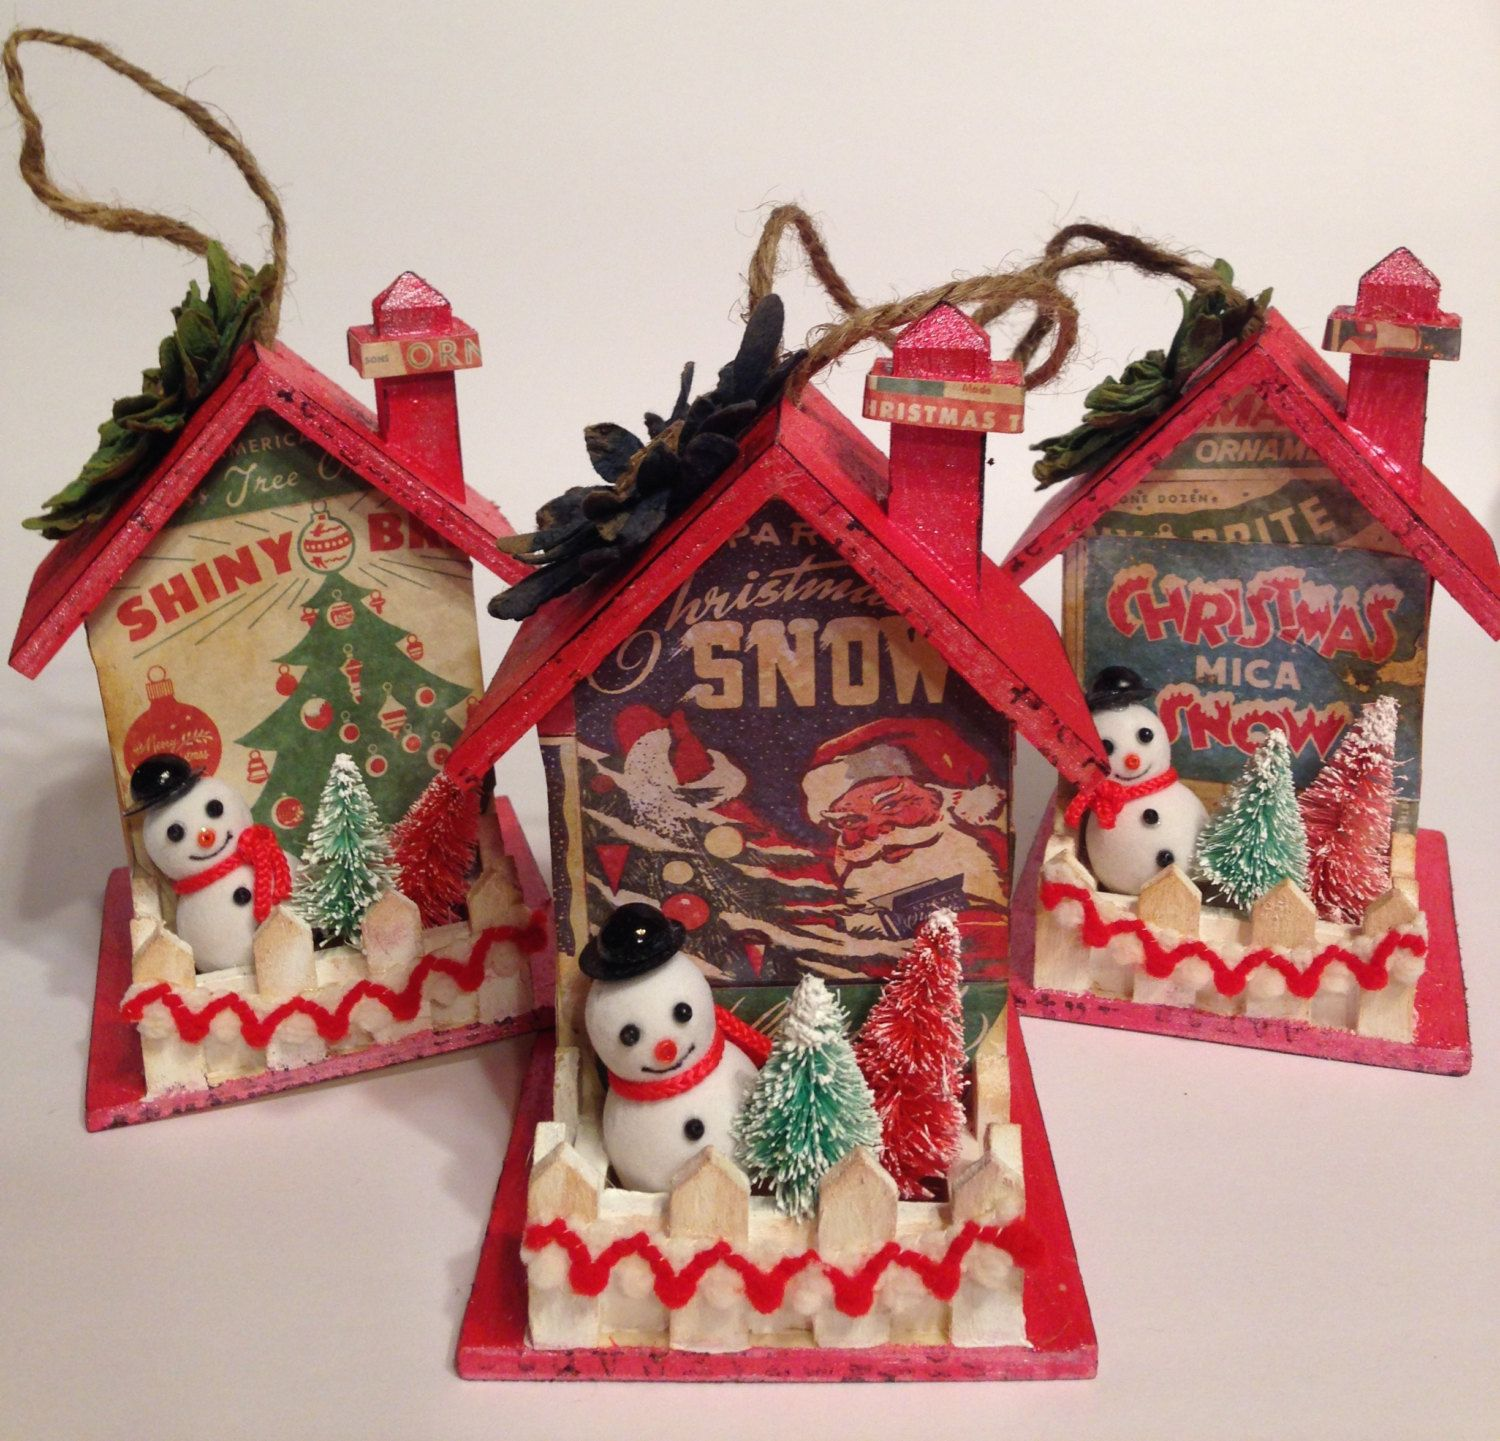 VINTAGE Inspired Christmas Ornaments~Set of 3~SNOWMAN~ Bottlebrush Tree~Birdhouse Ornament~ Shiny Brite~Altered House by ThePokeyPoodle on Etsy